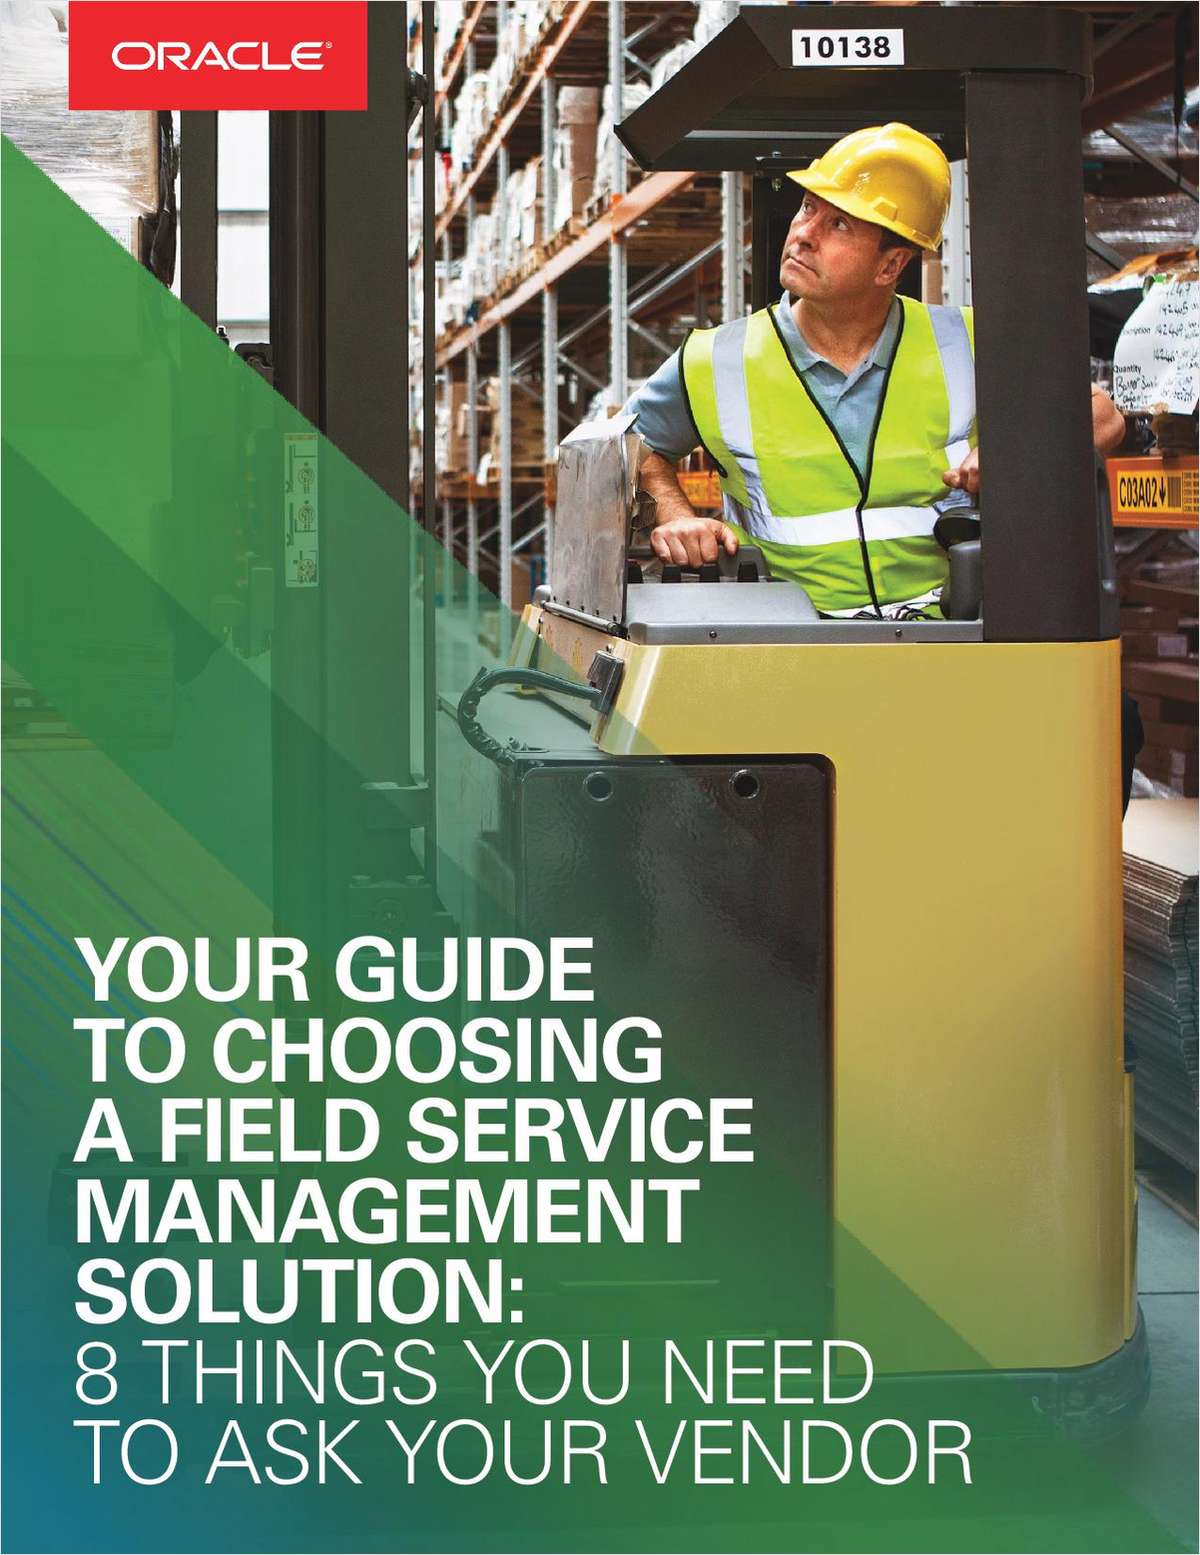 Your Guide To Choosing A Field Services Management Solution: 8 Things You Need To Ask Your Vendor